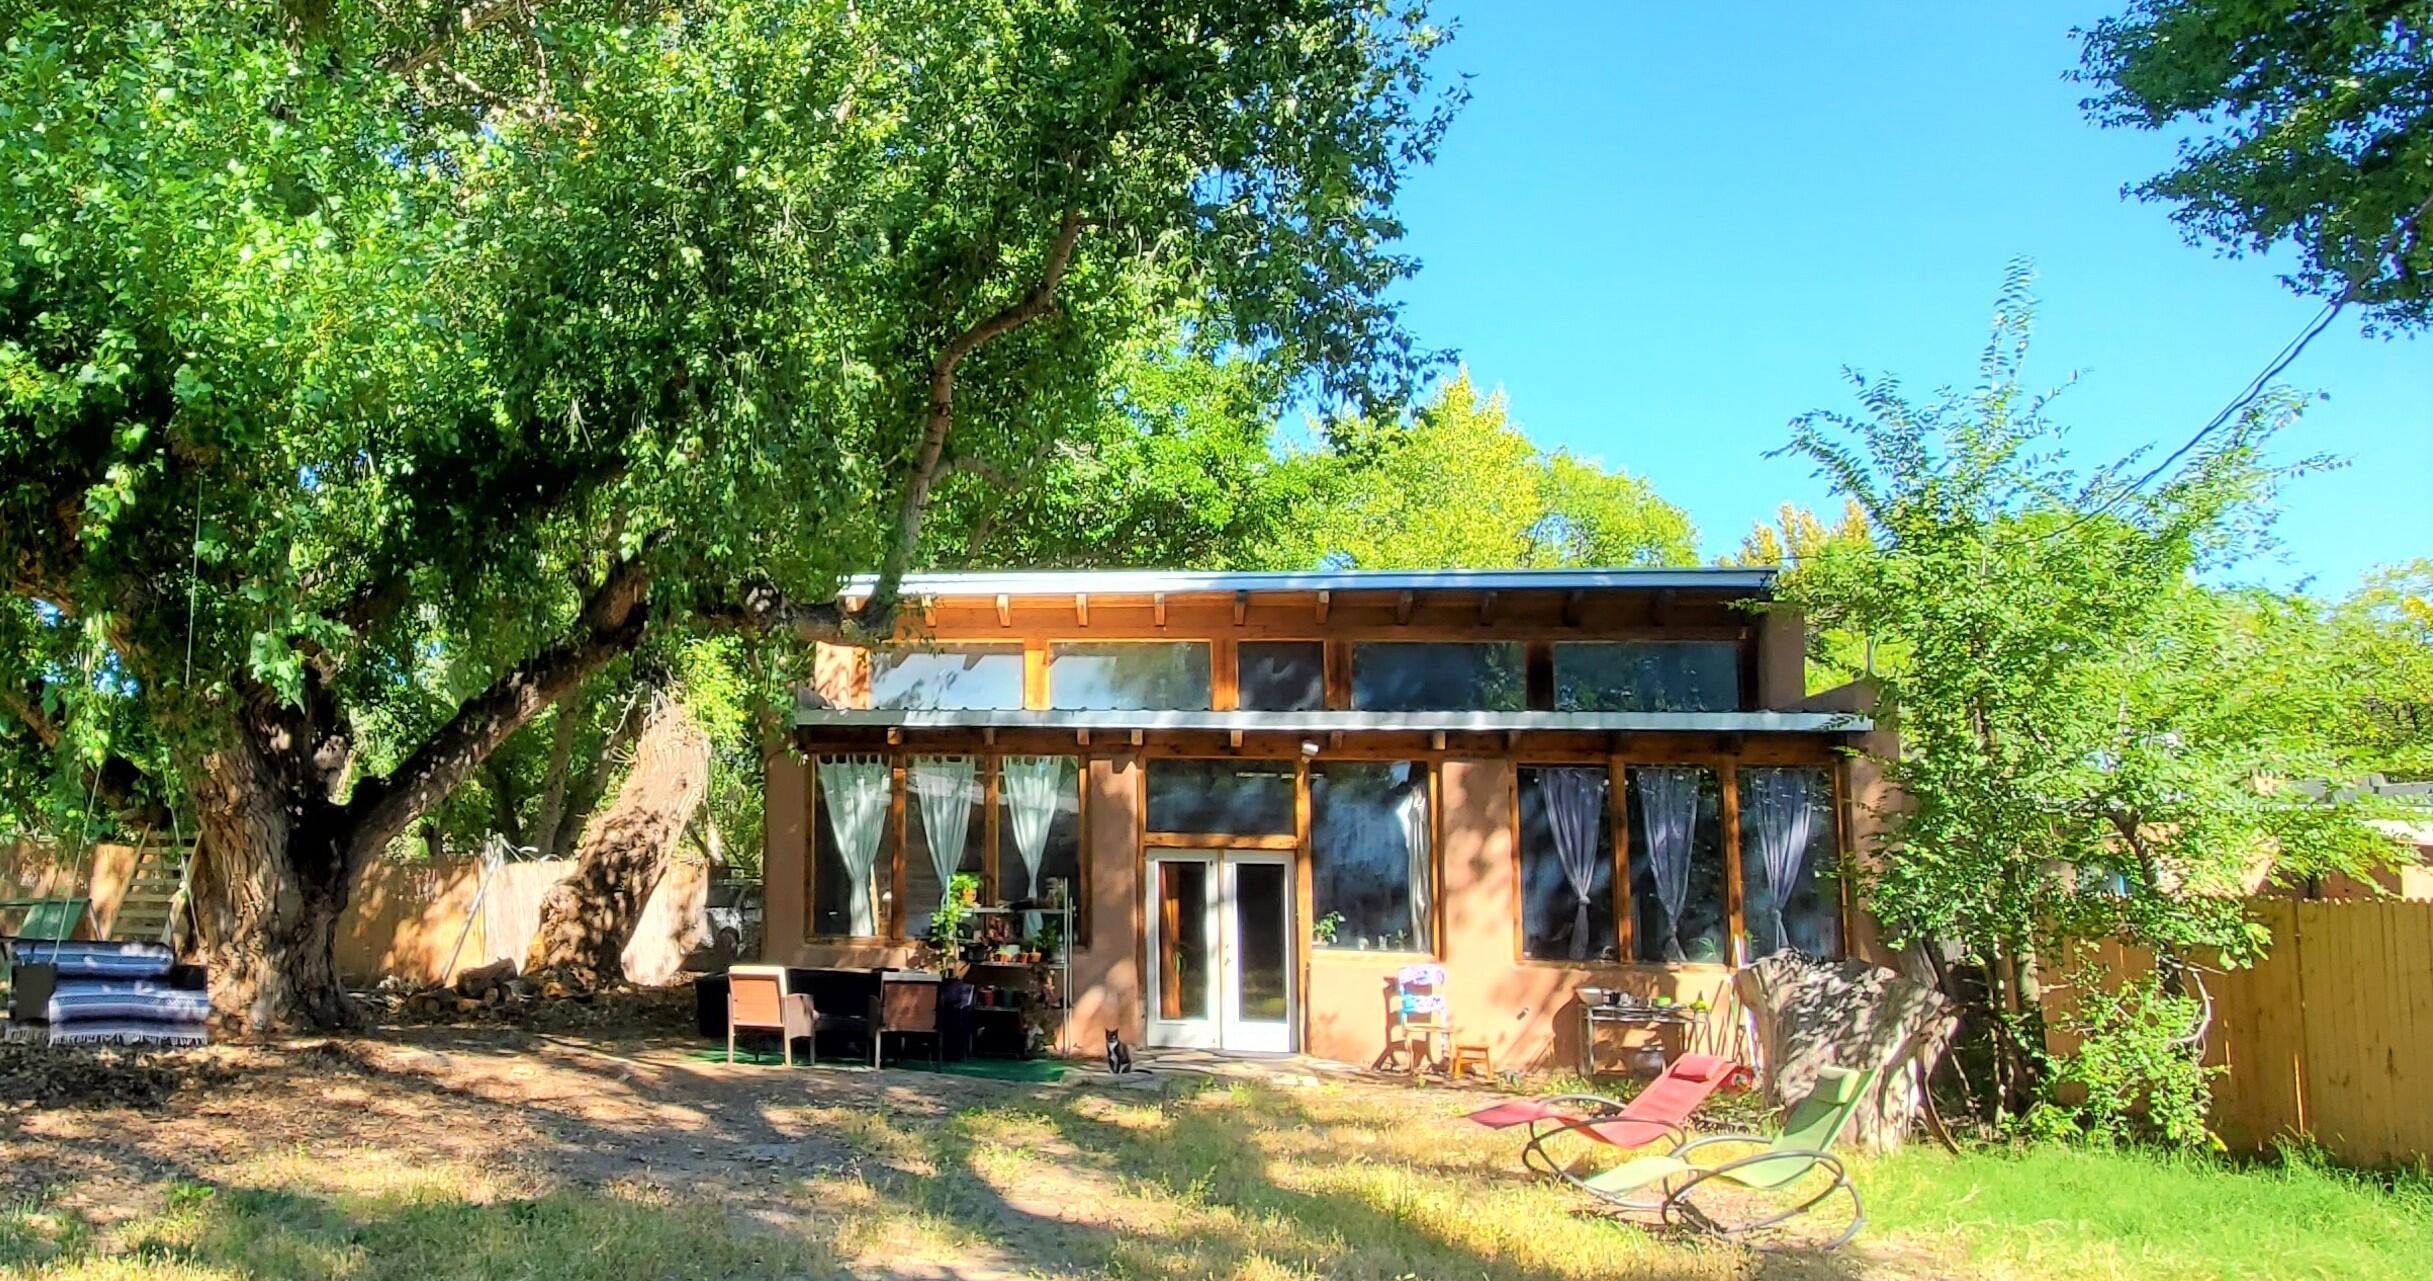 Passive solar adobe on a unique property! The last house on a dead end, nestled between giant old growth cottonwoods/elms and organic gardens situated right next to the Irrigation ditch/trails with water rights for growing...truly an oasis that is naturally green and cool. A safe retreat less than 10 minutes from downtown near Barelas, that still has plenty of privacy on .61 acre, secured with 8ft razor fencing. 15ft ceilings, adobe cemented walls and brick floor, Jacuzzi garden tub, bright kitchen including appliances and wood stoves... Insulated sunny warehouse with double garage doors at 1500 Sq Ft. which comes with ventilation hood, metal closet safe and double sinks/dishwasher and a car lift. Also a 20x8 solar building with laundry and .75 bathroom for RV guests. A rare find.